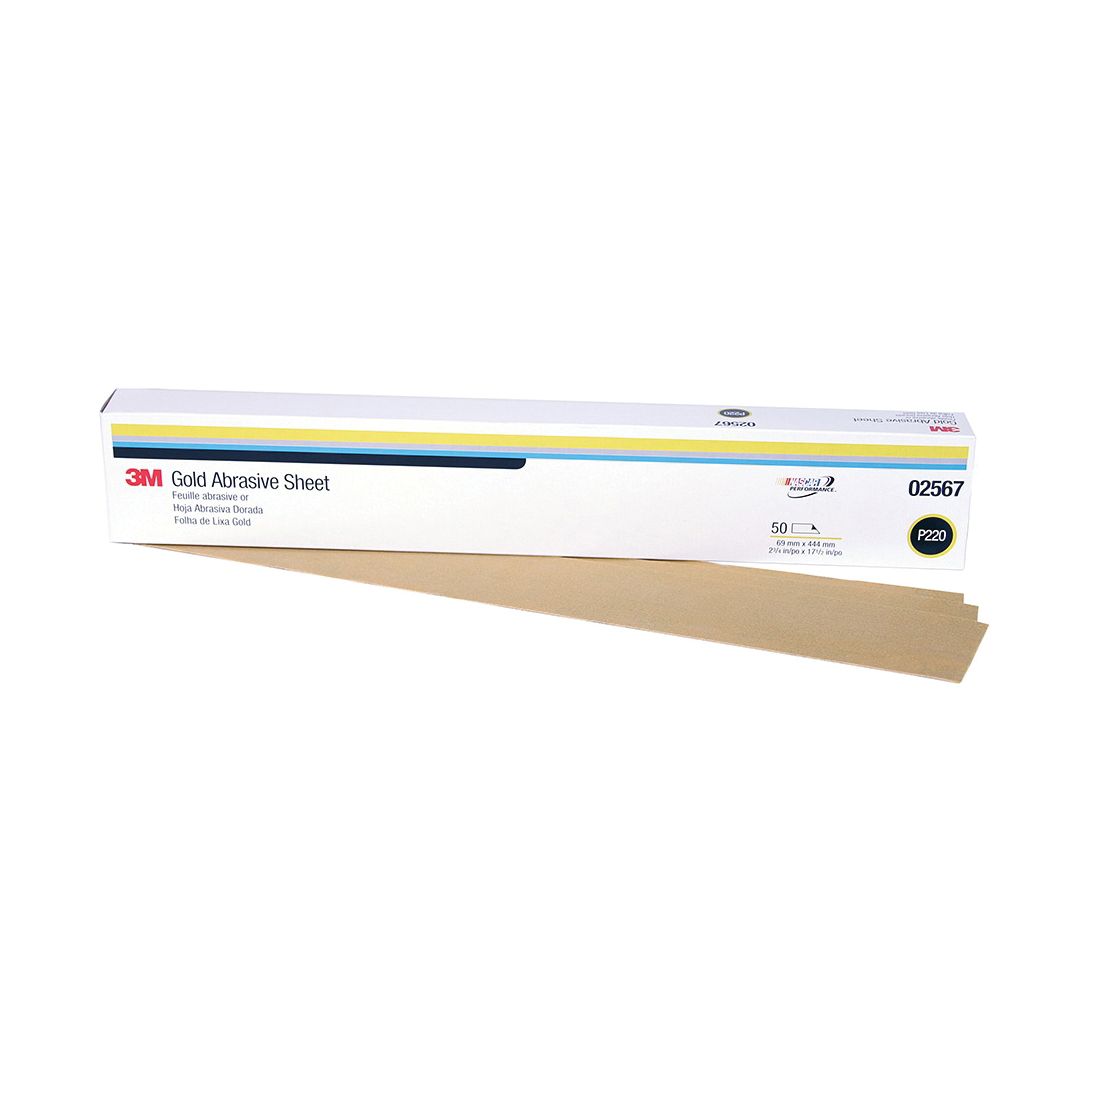 3M™ Production™ Resinite™ 051131-02567 Clip-On Coated Abrasive Sheet, 16-1/2 in L x 2-3/4 in W, P220 Grit, Coarse Grade, Aluminum Oxide Abrasive, Paper Backing